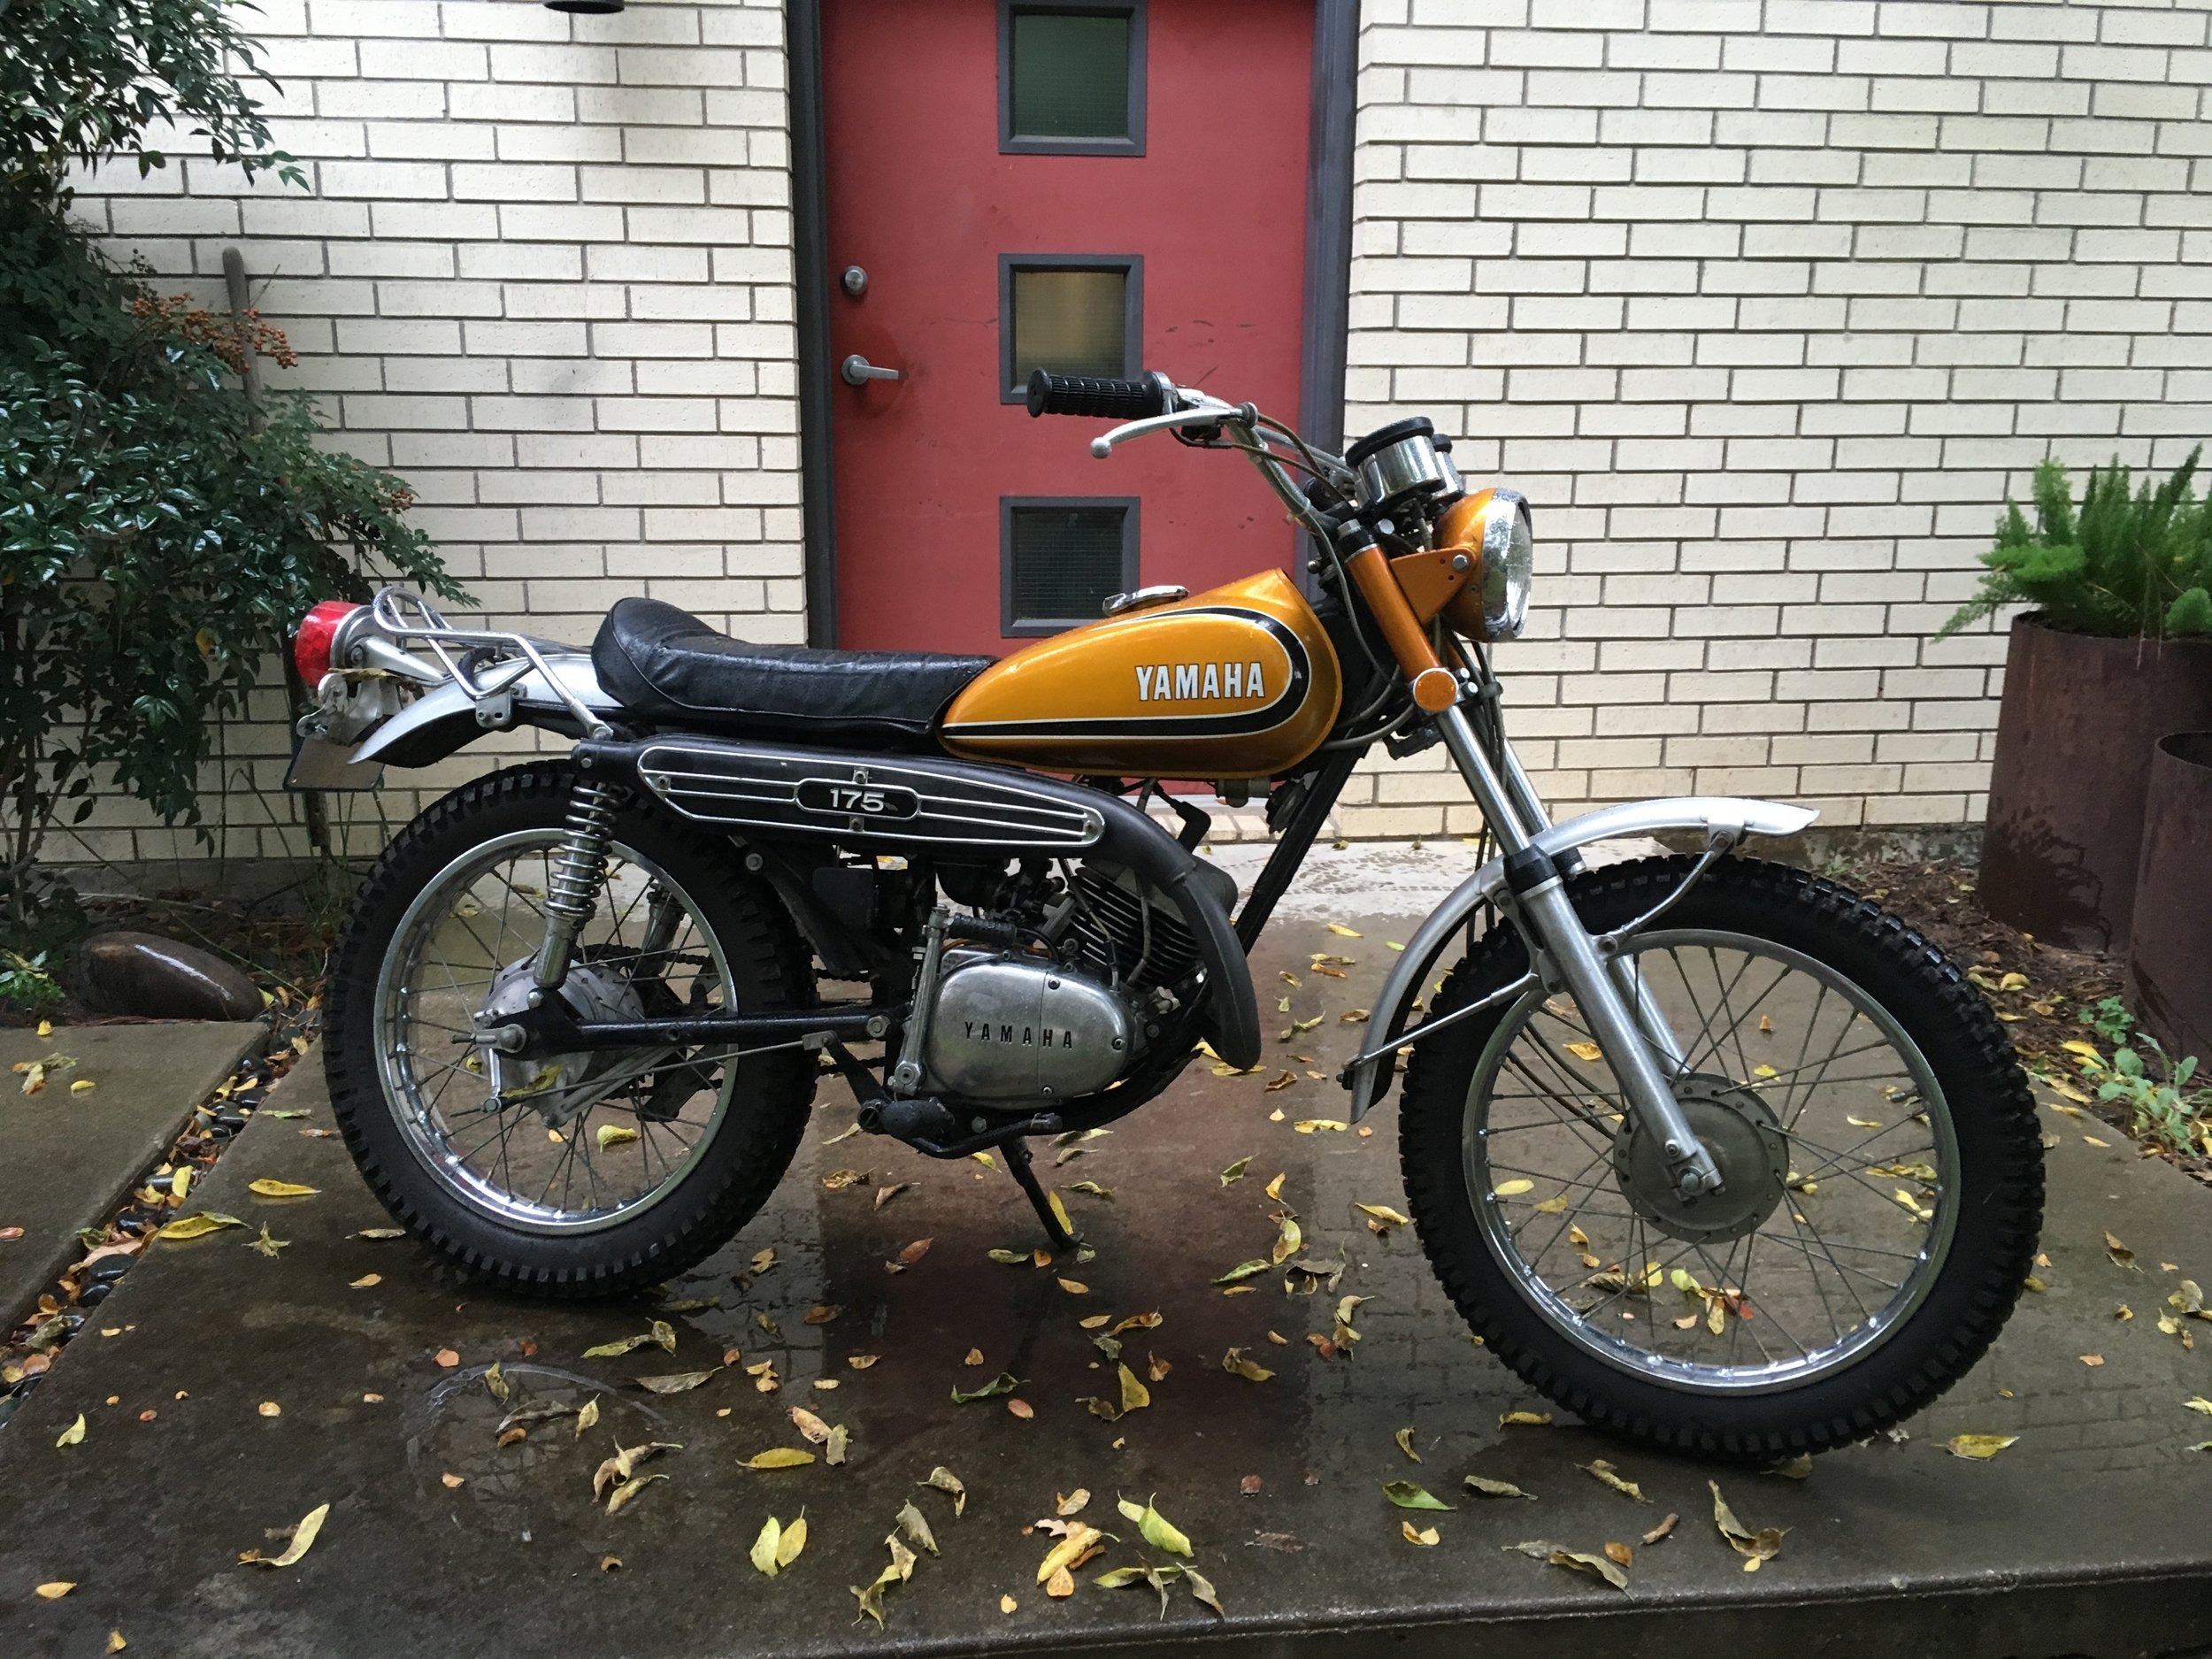 The 1973 Yamaha CT3 is back in business. A used right engine center case, tranny output shaft and a couple of gears replaced the broken ones. Still waiting on a new petcock to be done with this one. It will be for sale when done.